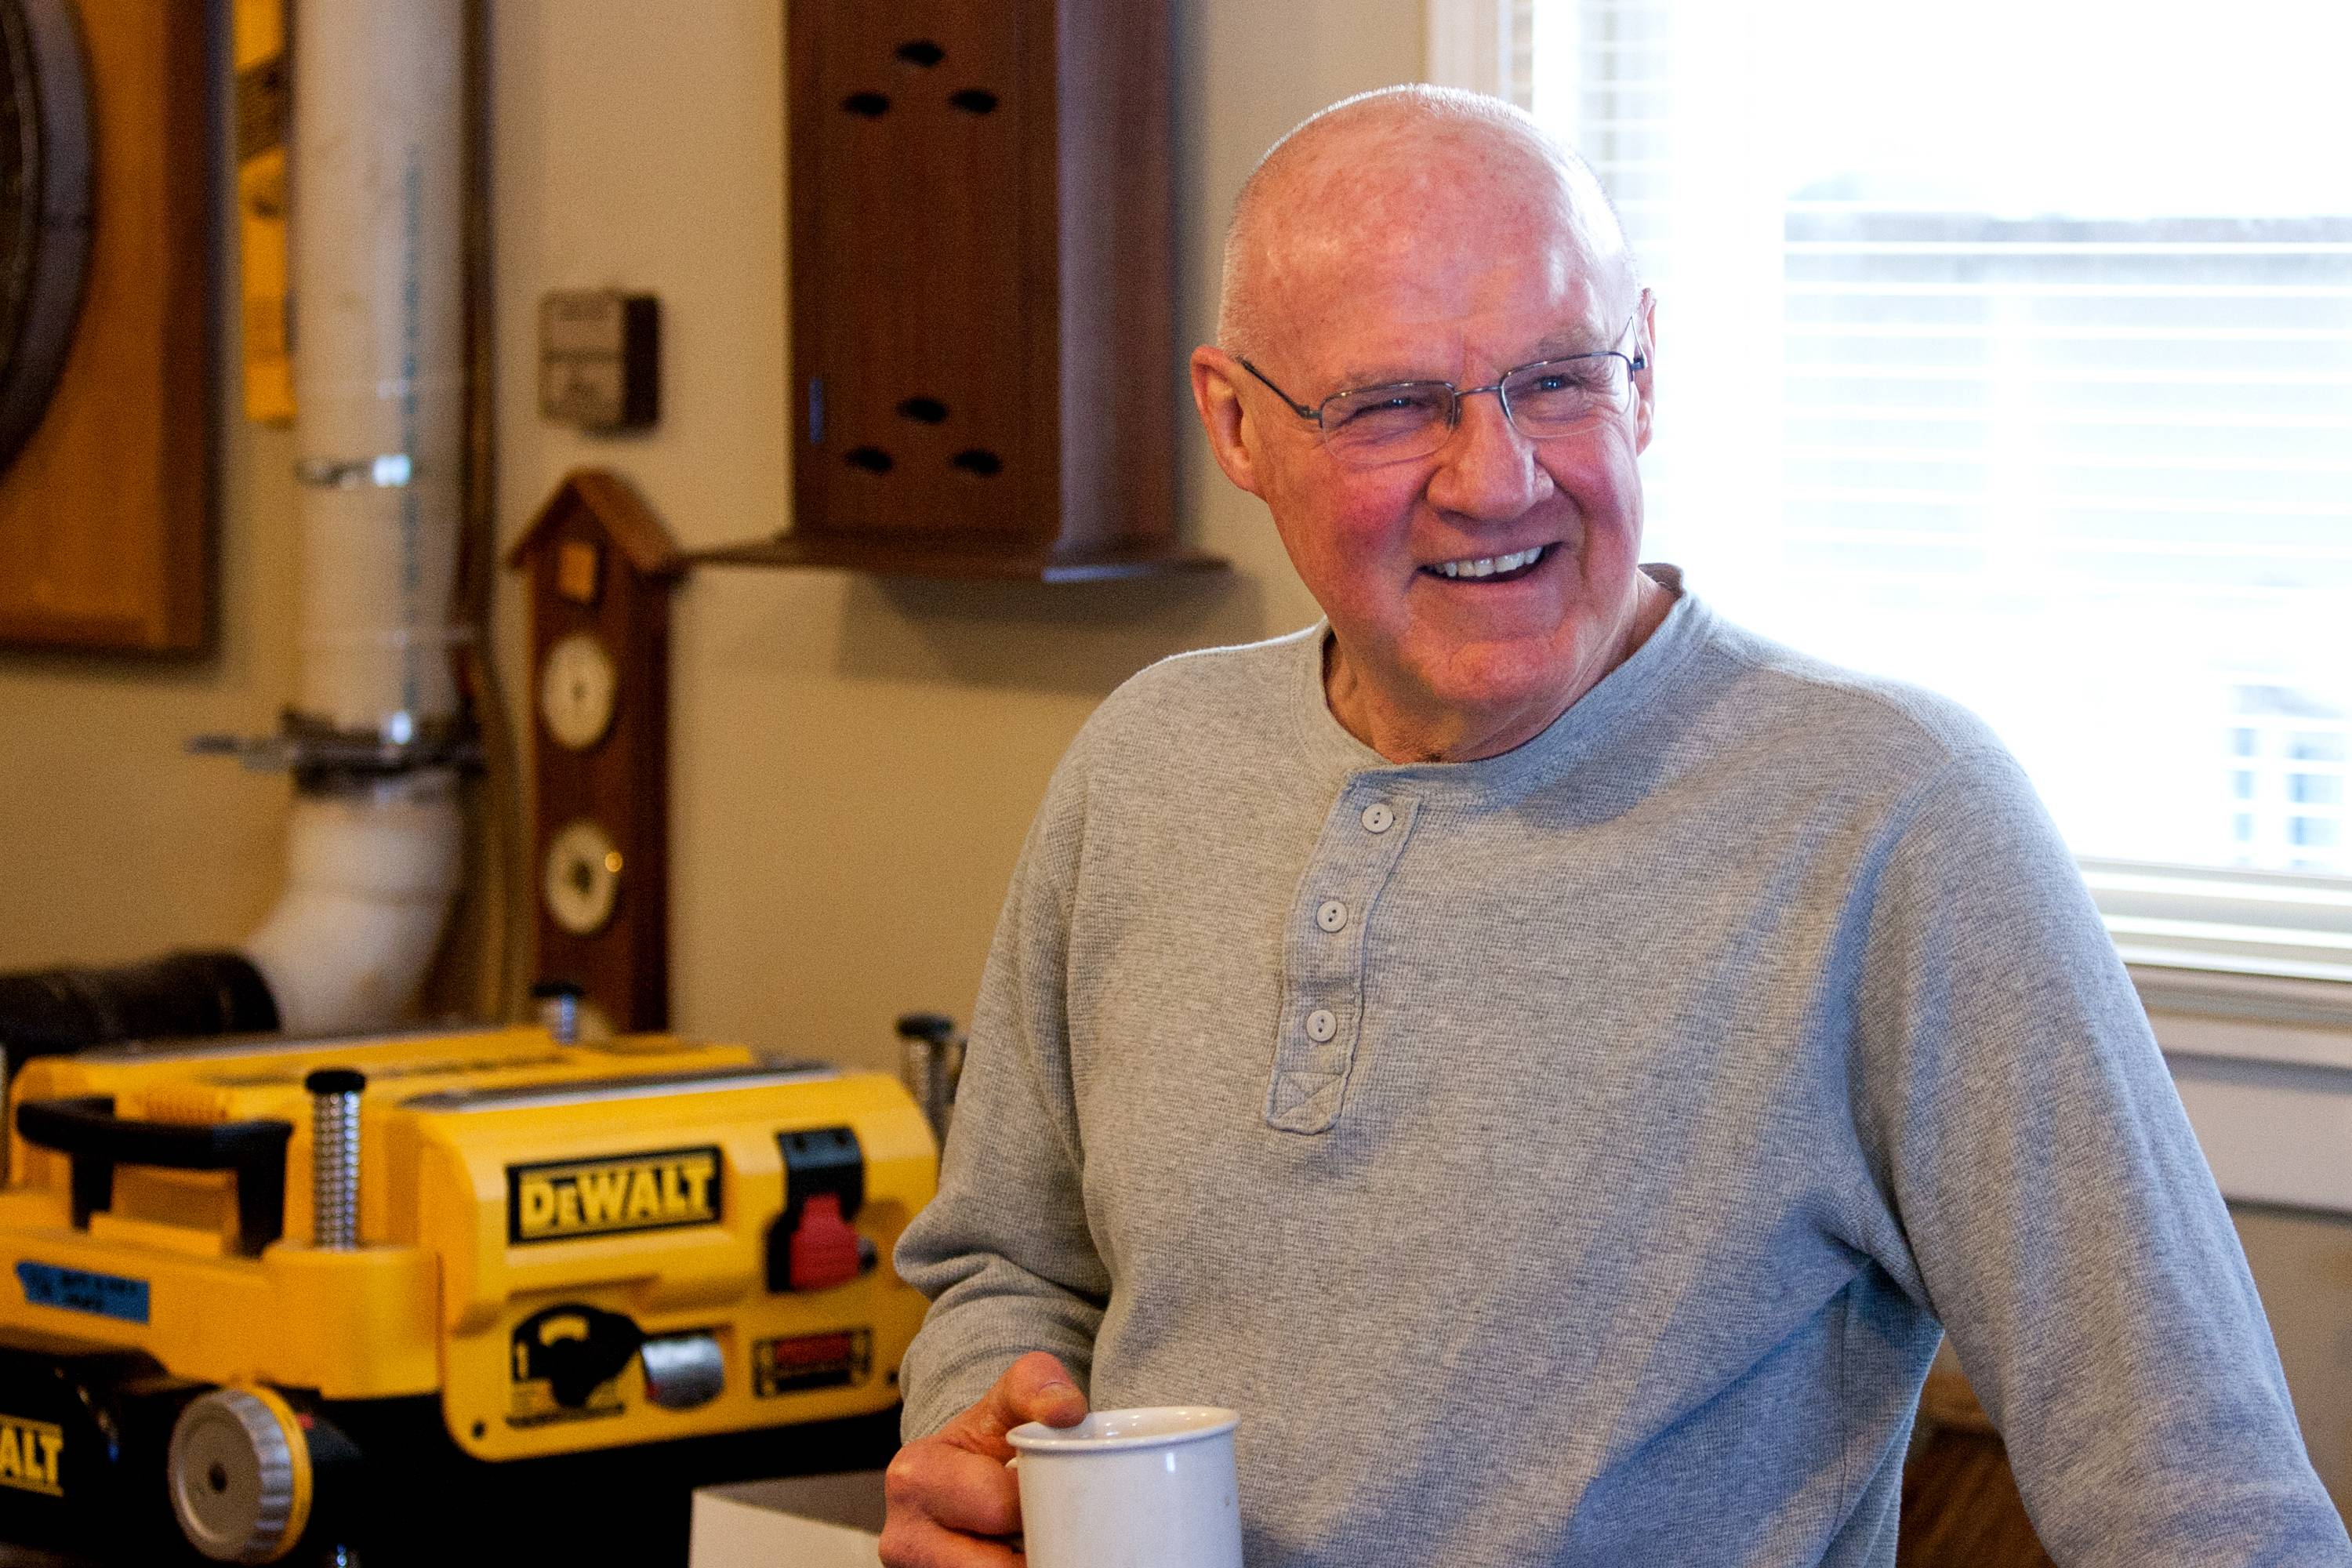 Wayne Maier, 67, of Glen Ellyn enjoys his woodworking hobby, which always includes relaxing with a cup of coffee.